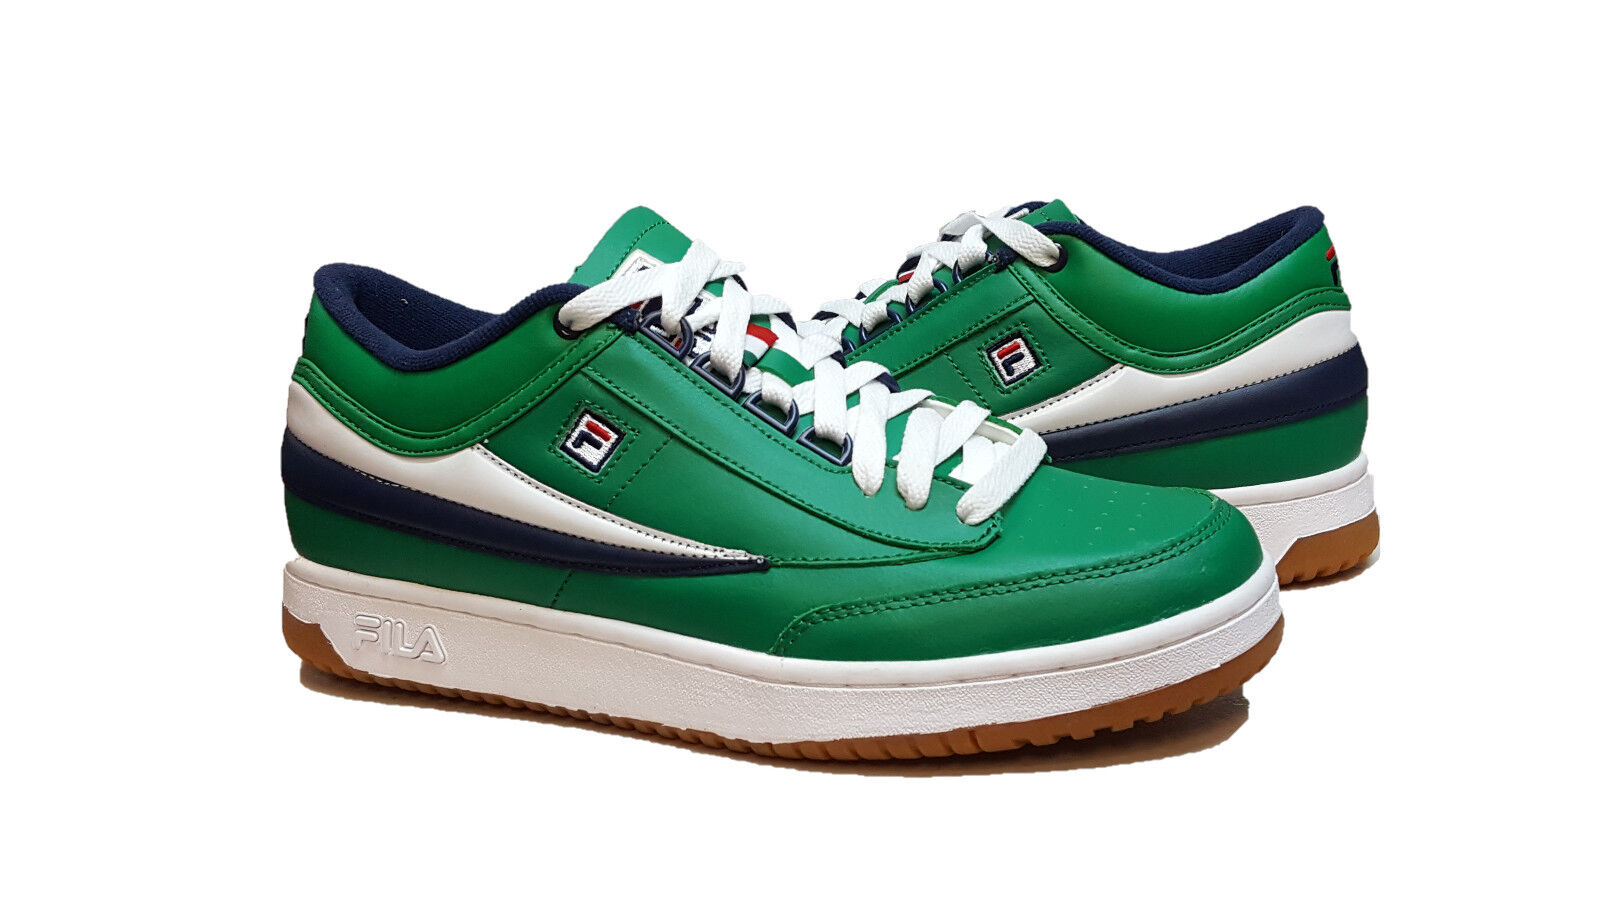 FILA Men's T-1 Mid Top (Green White Navy) Fashion Sneakers